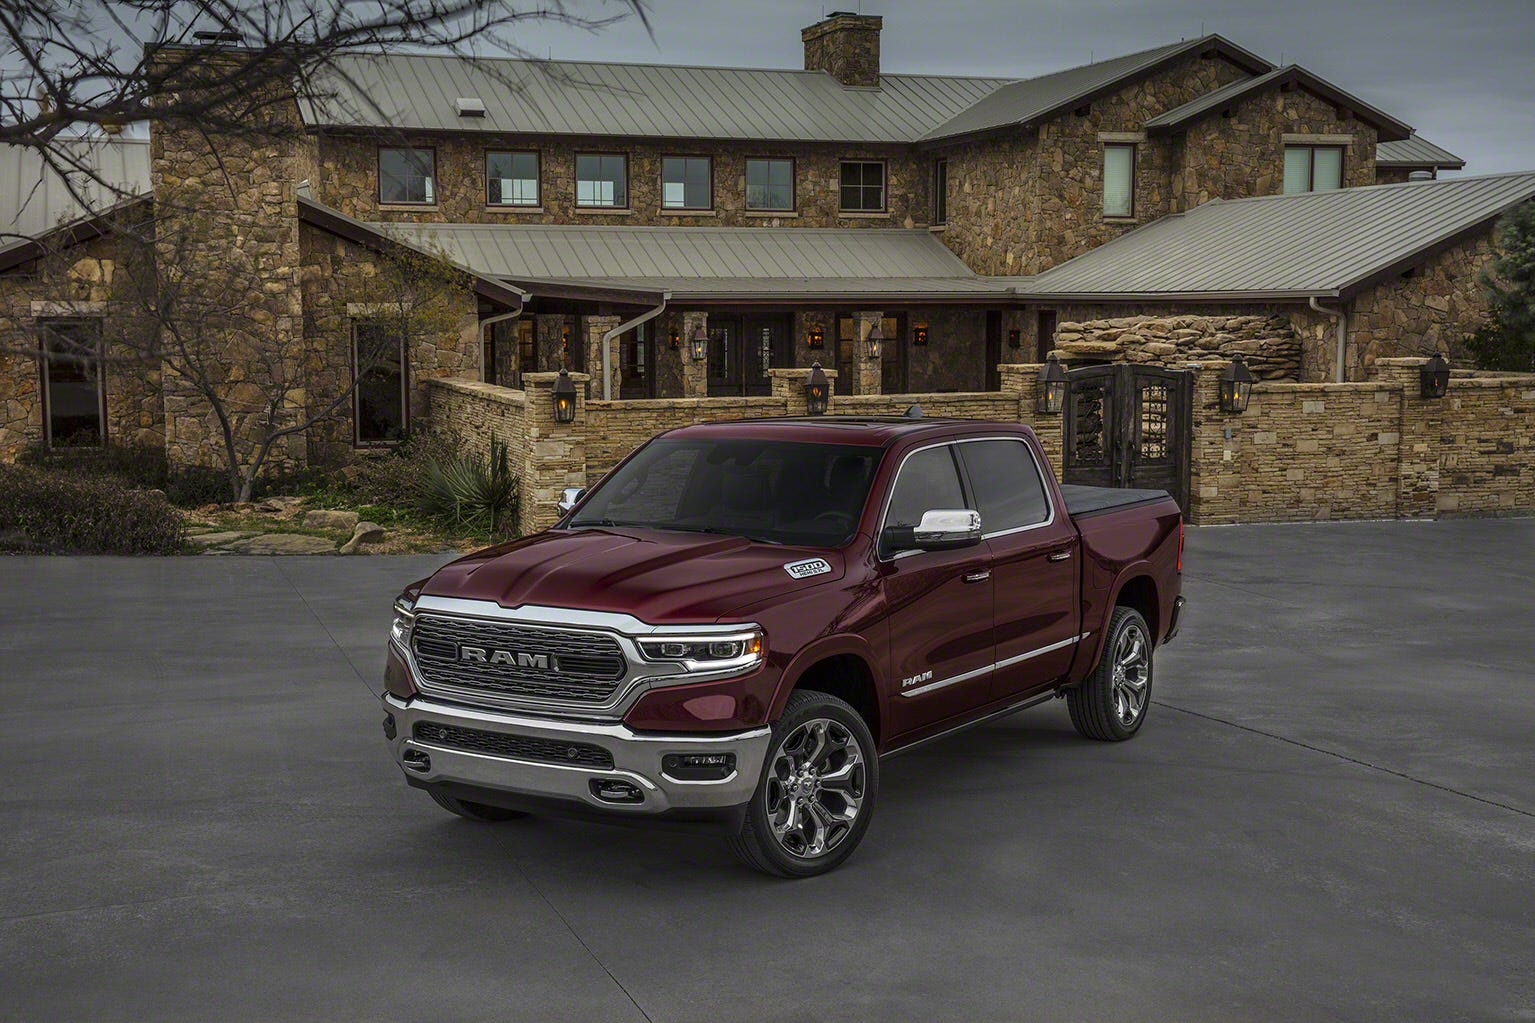 Toyota Tacoma 2015-2018 Service Manual: Theft Deterrent System Unexpectedly Sets Itself